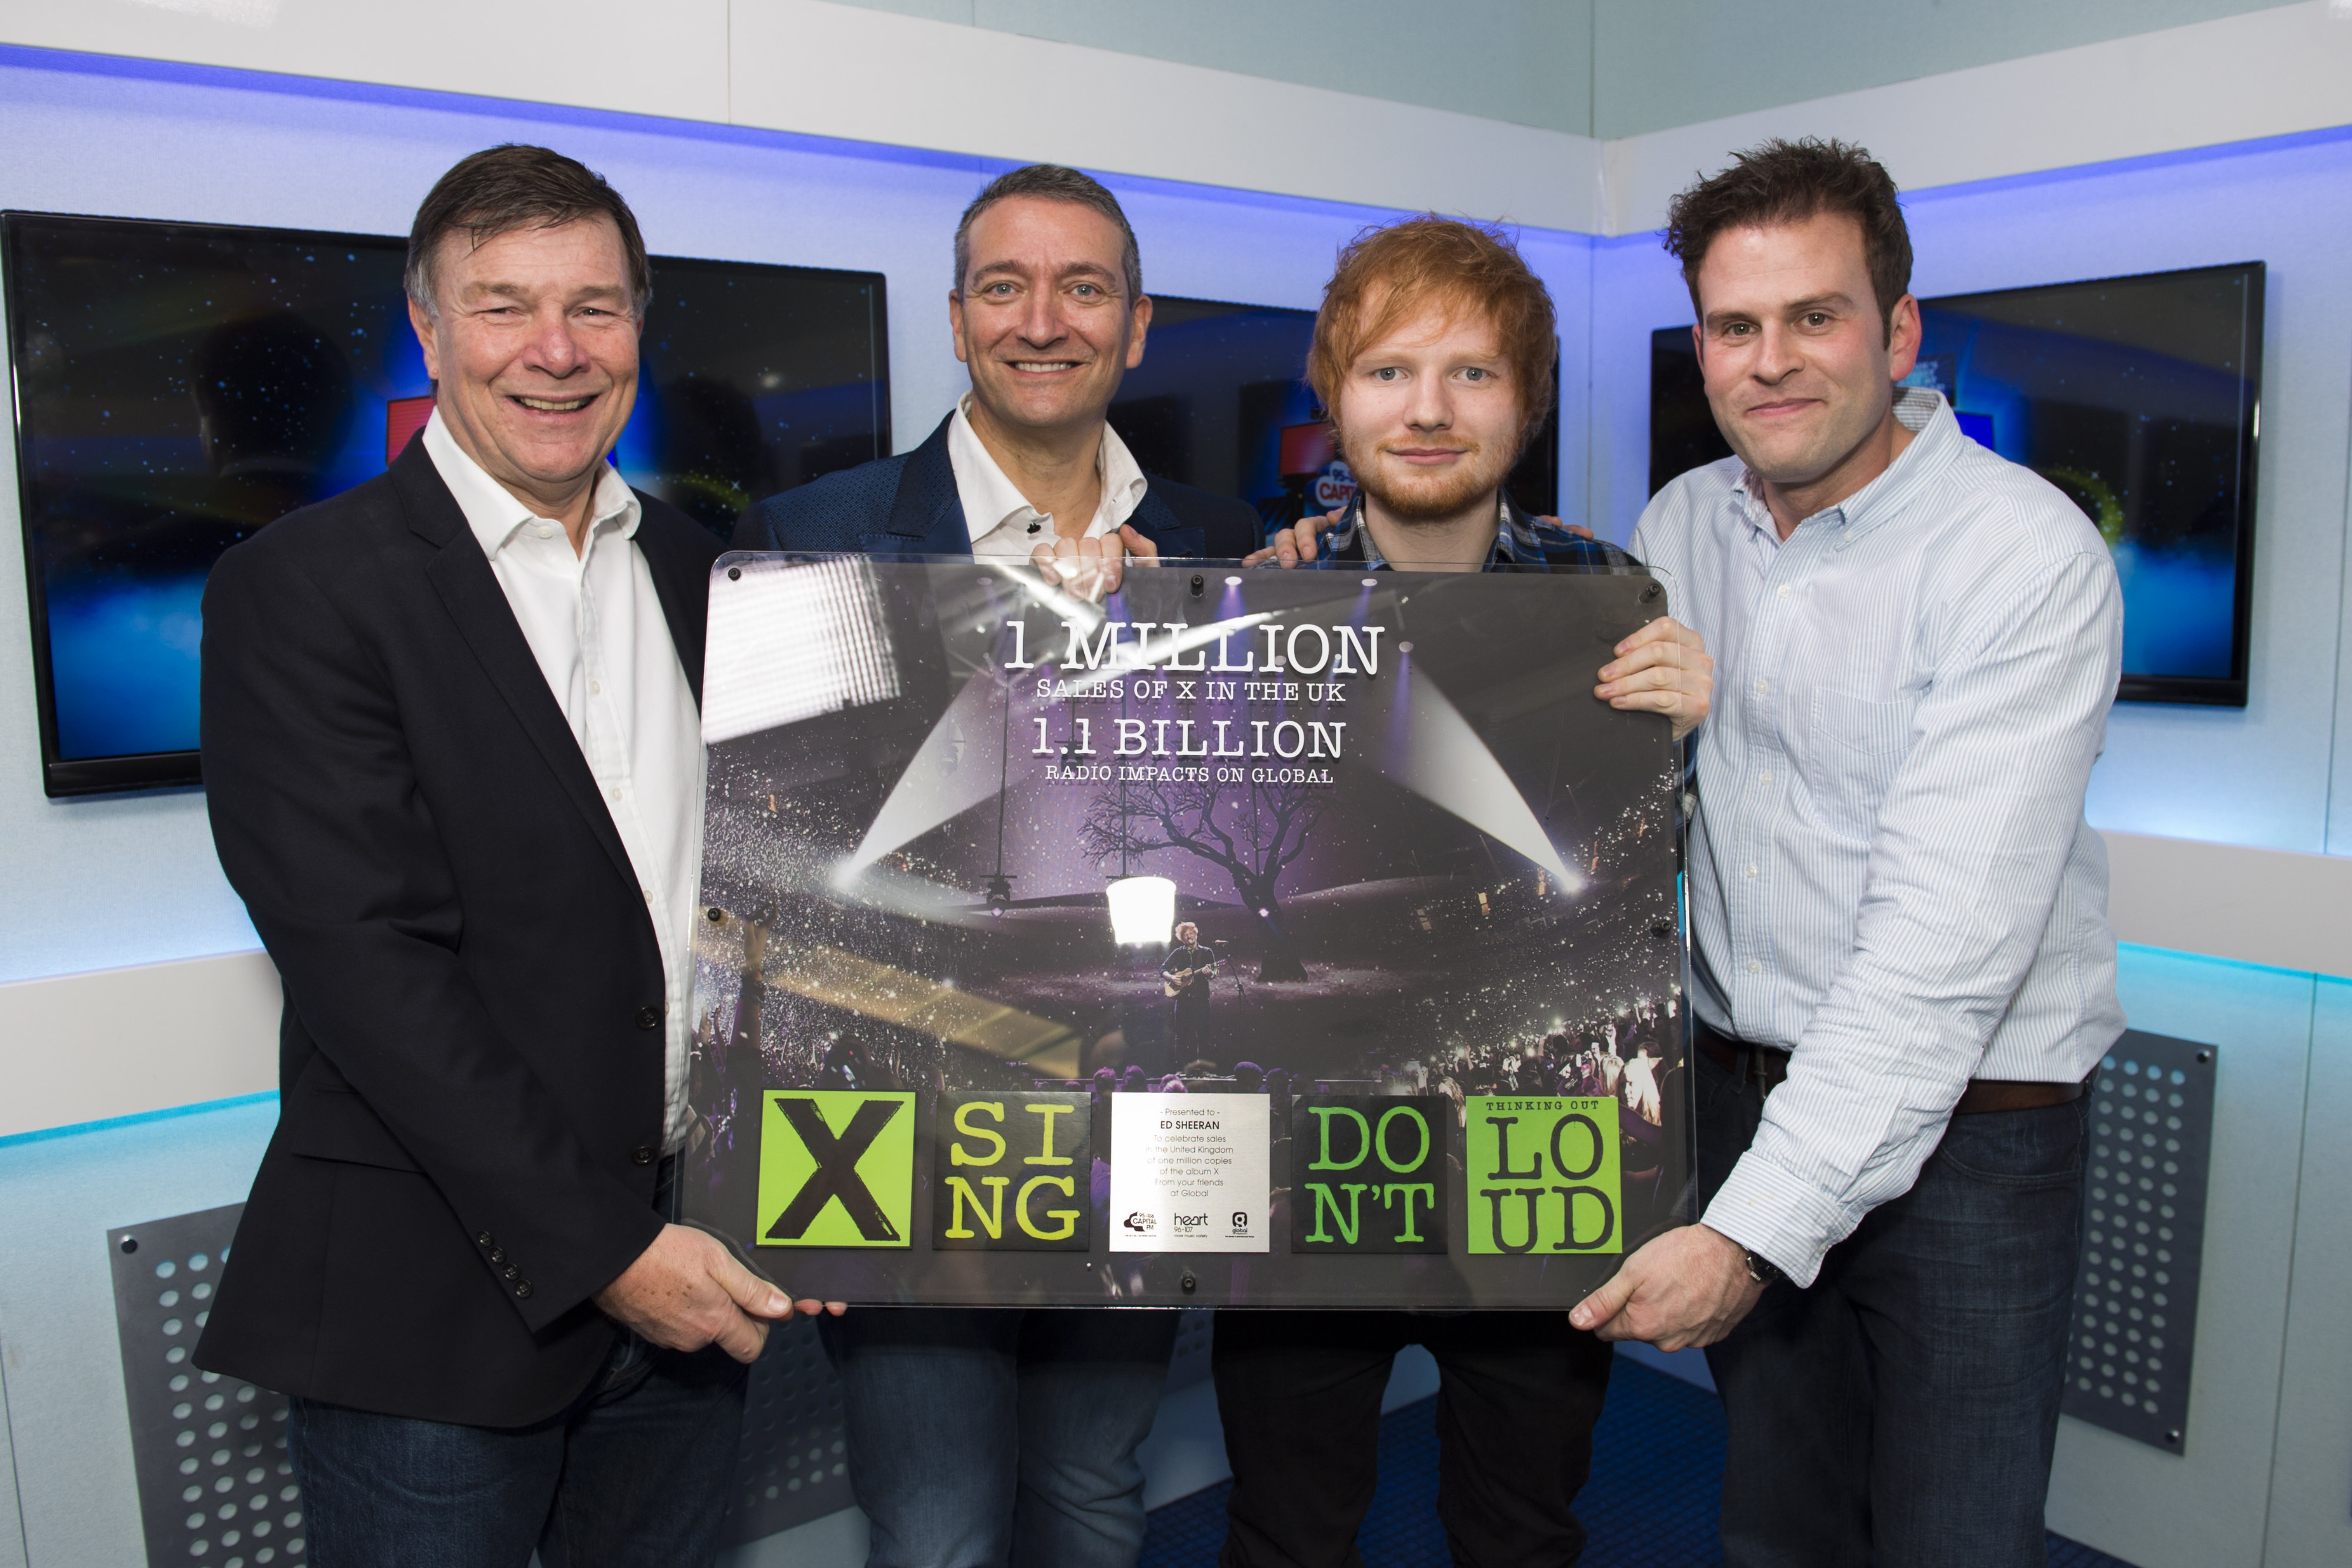 Ed Sheeran with Award